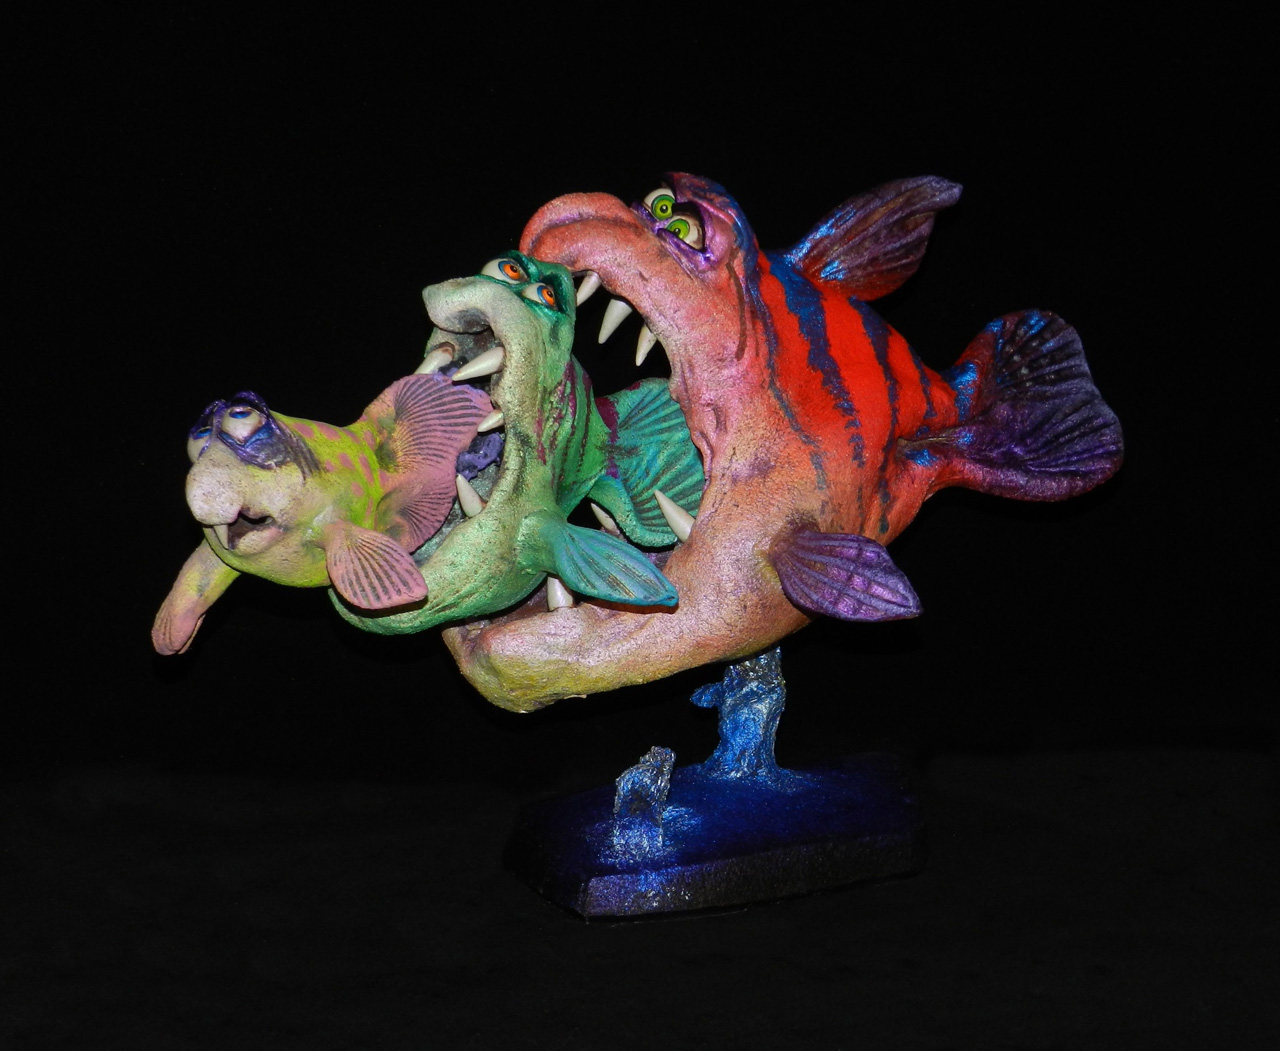 Seafood by Steven Lee Smeltzer cartoonish whimsical clay sculpture of three fish eating each other